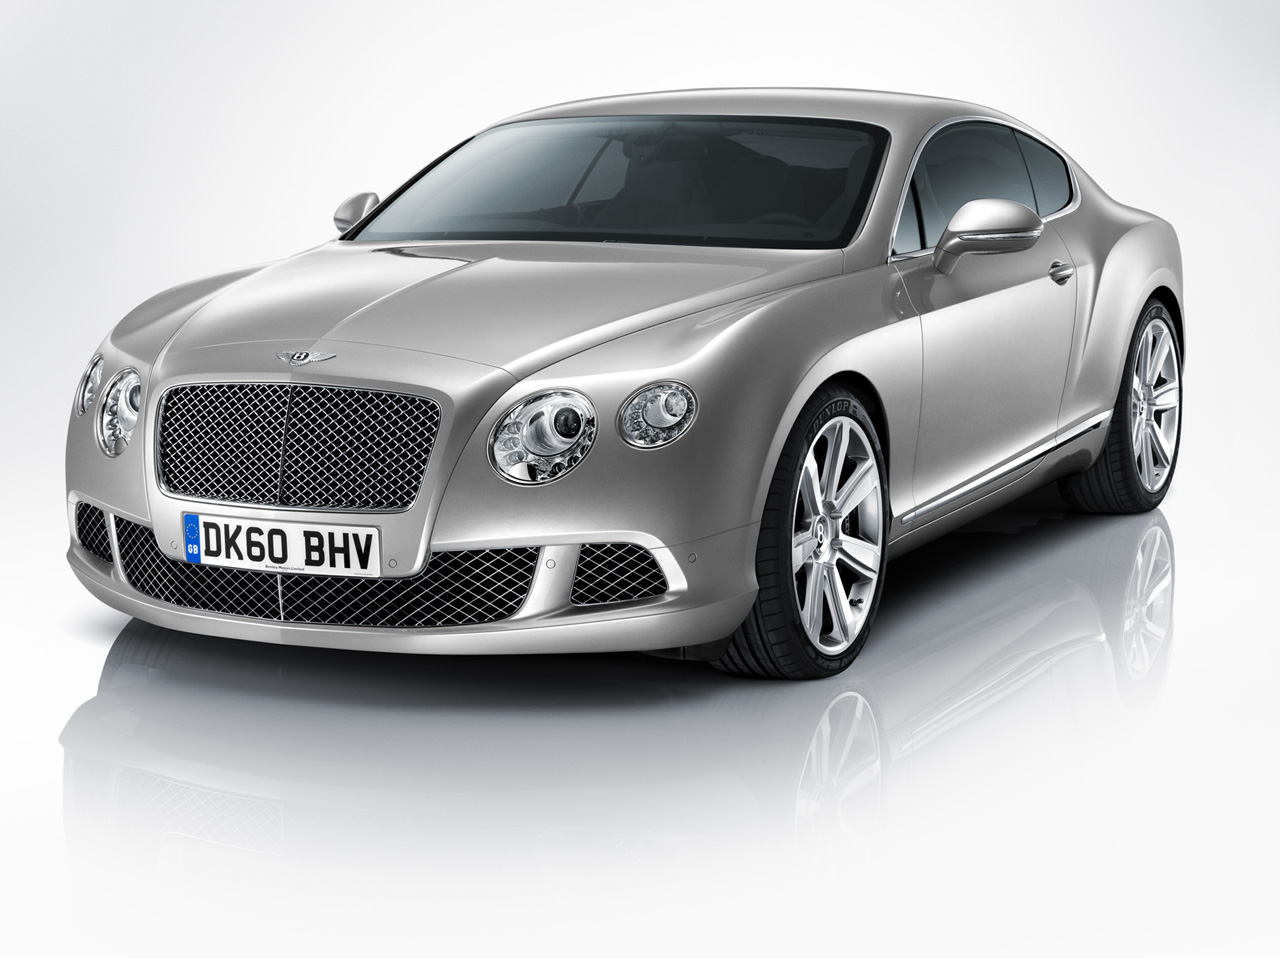 Launched 2011 bentley continental gt wvideo brake banzeen launched 2011 bentley continental gt wvideo vanachro Image collections